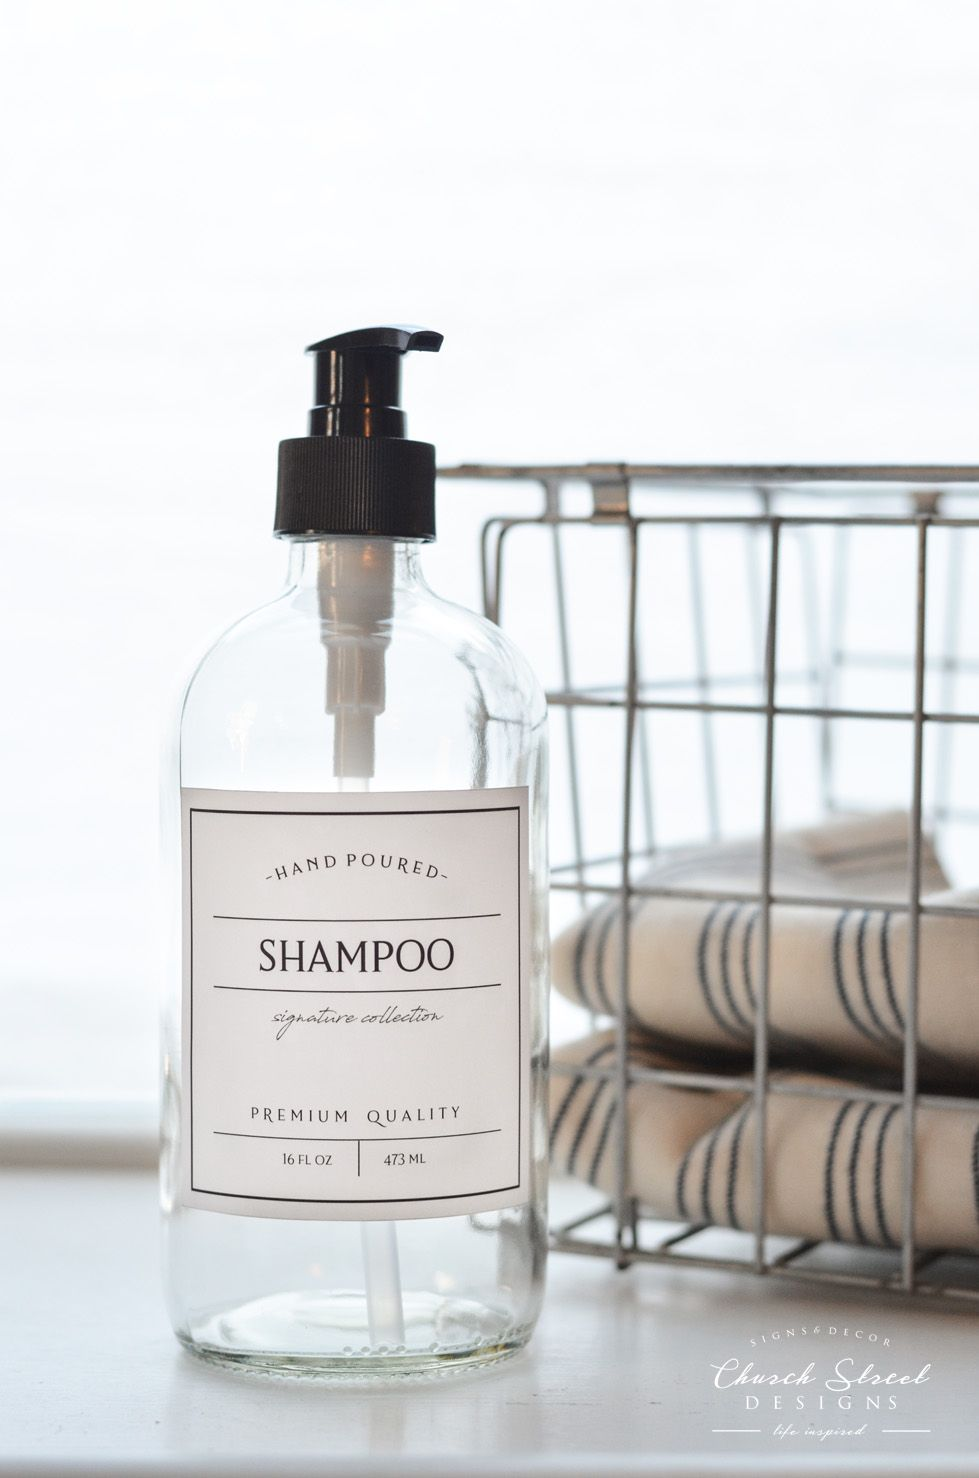 Clear Glass Shampoo Bottle Refillable Bottle With Pump And Waterproof Label Free Shipping Shampoo Bottles Shampoo Bottles Design Refillable Shampoo Bottles